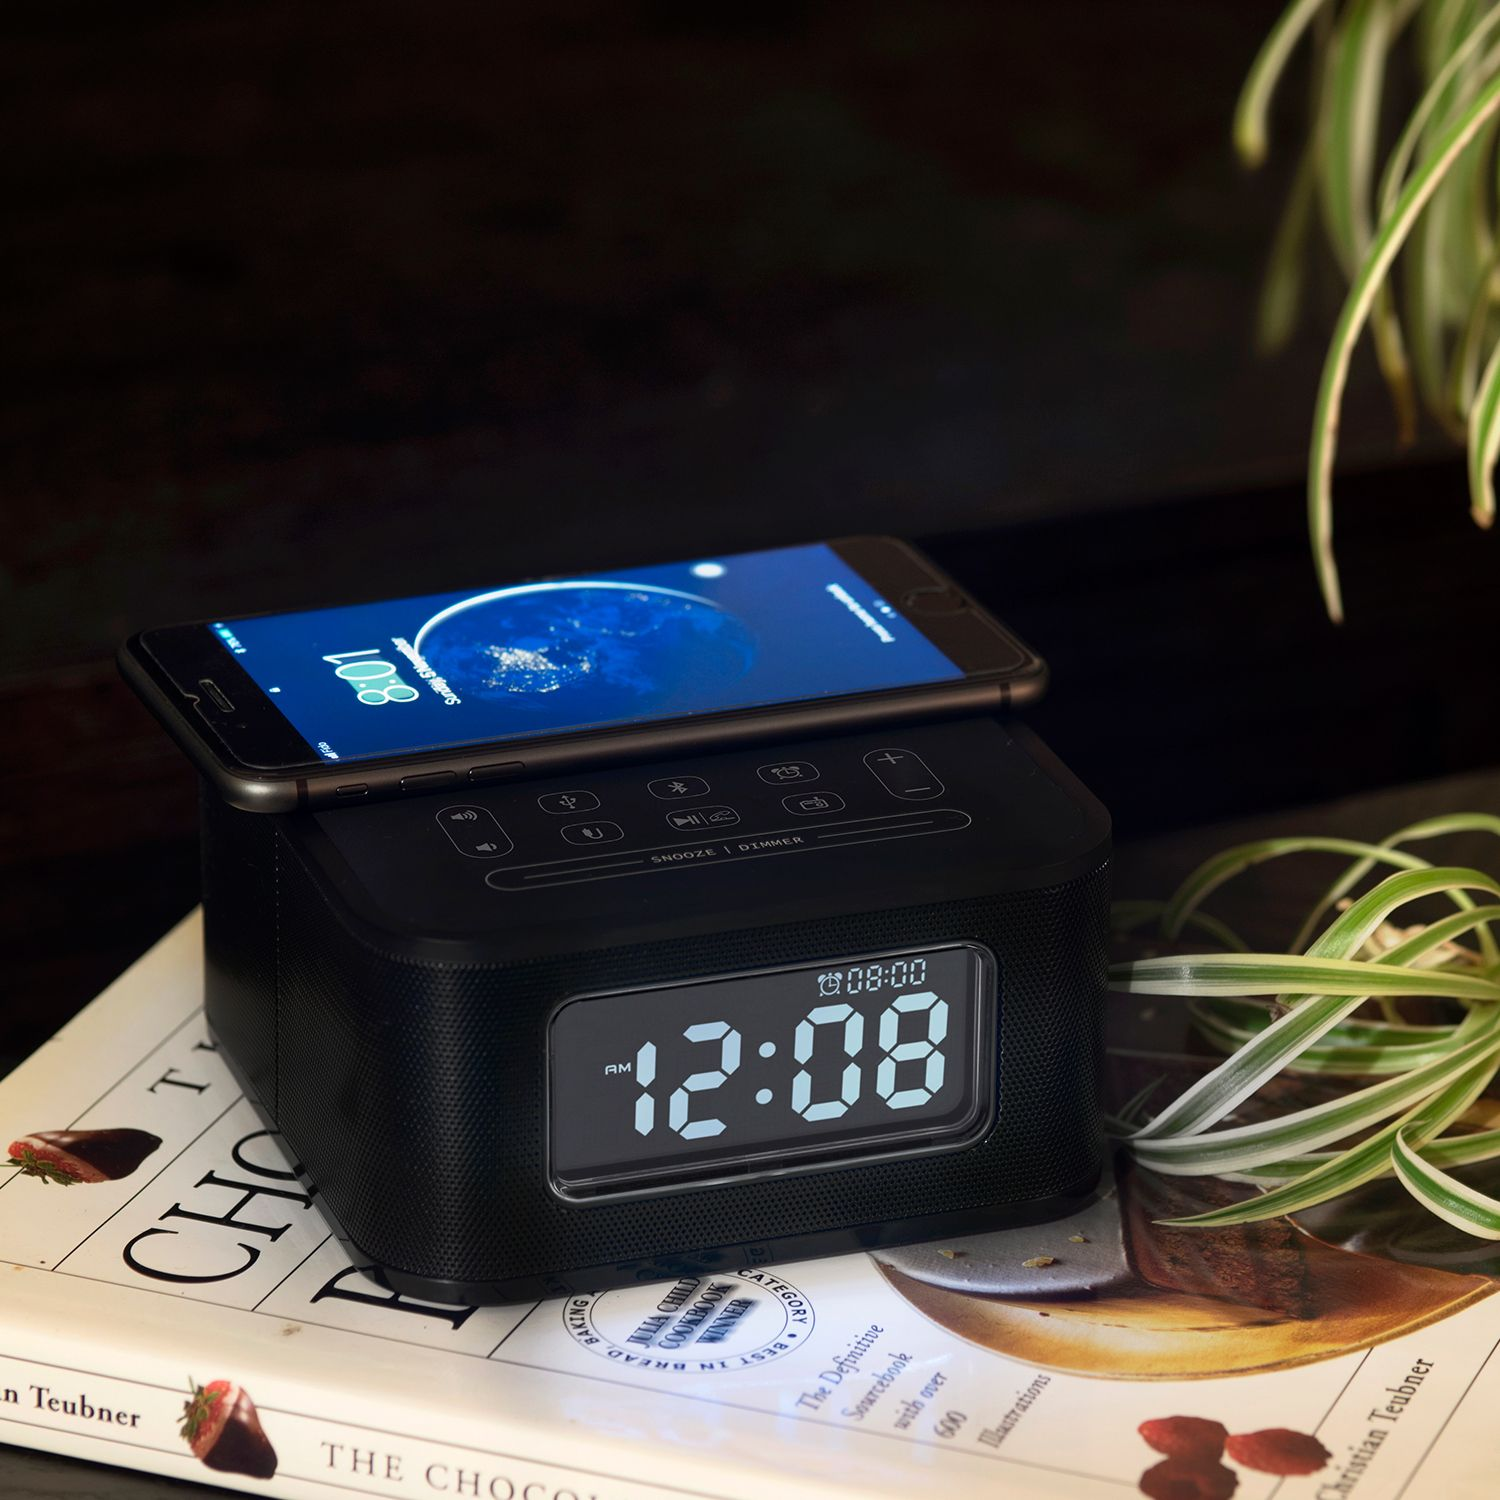 Homtime Wireless Charging Alarm Clock Radio Bluetooth Speaker For Bedrooms Wireless Charger For Iphone X Snooze Radio Alarm Clock Alarm Clock Wireless Charger